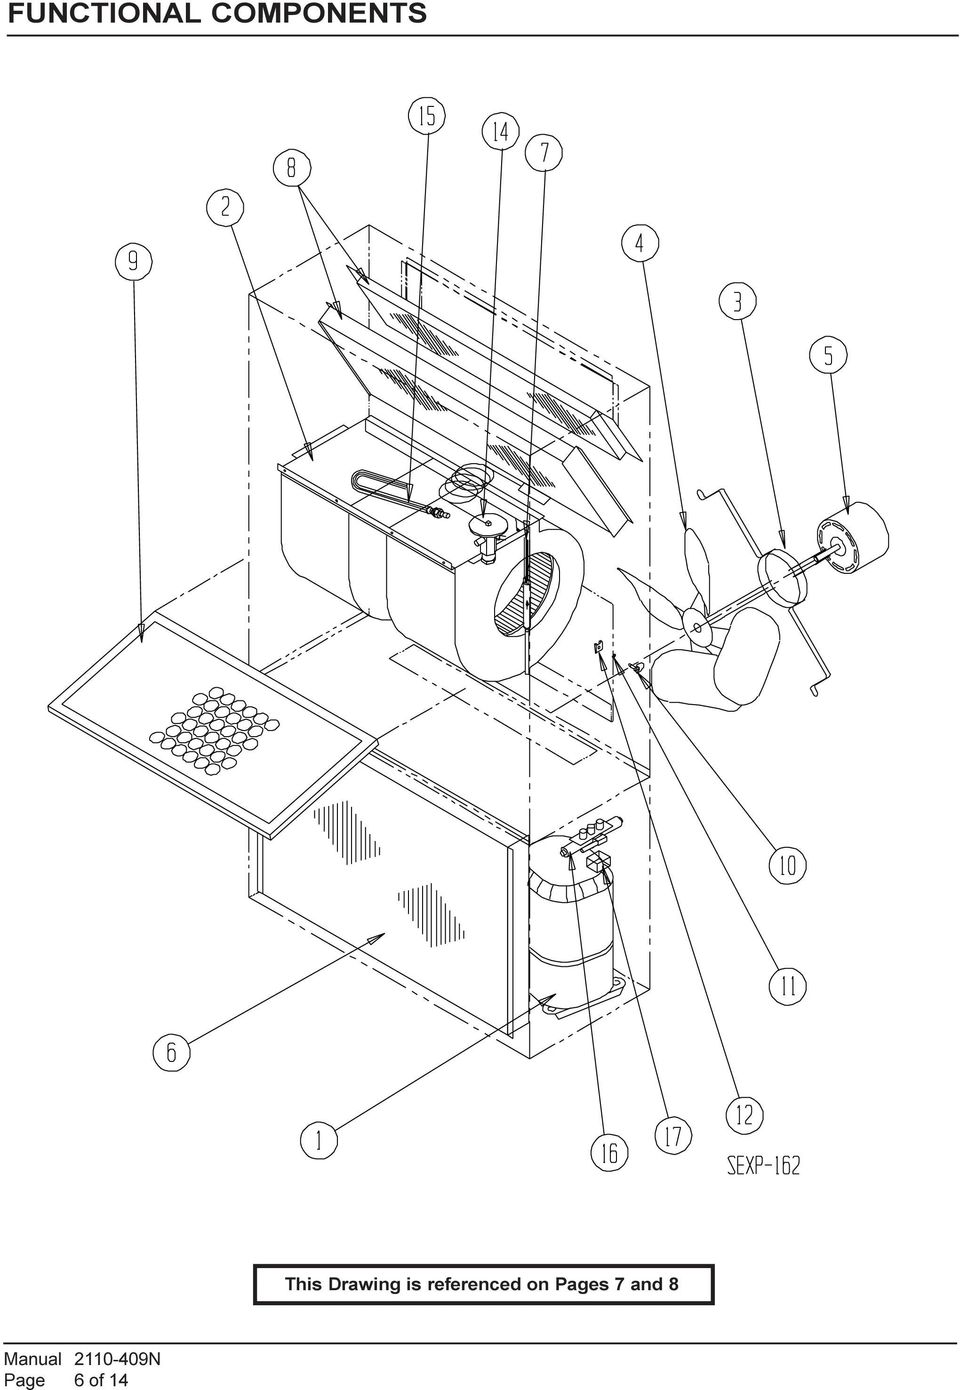 wall mounted package air conditioner replacement parts manual models Toyota Air Conditioner Diagram Rav 4 2010 referenced on pages 7